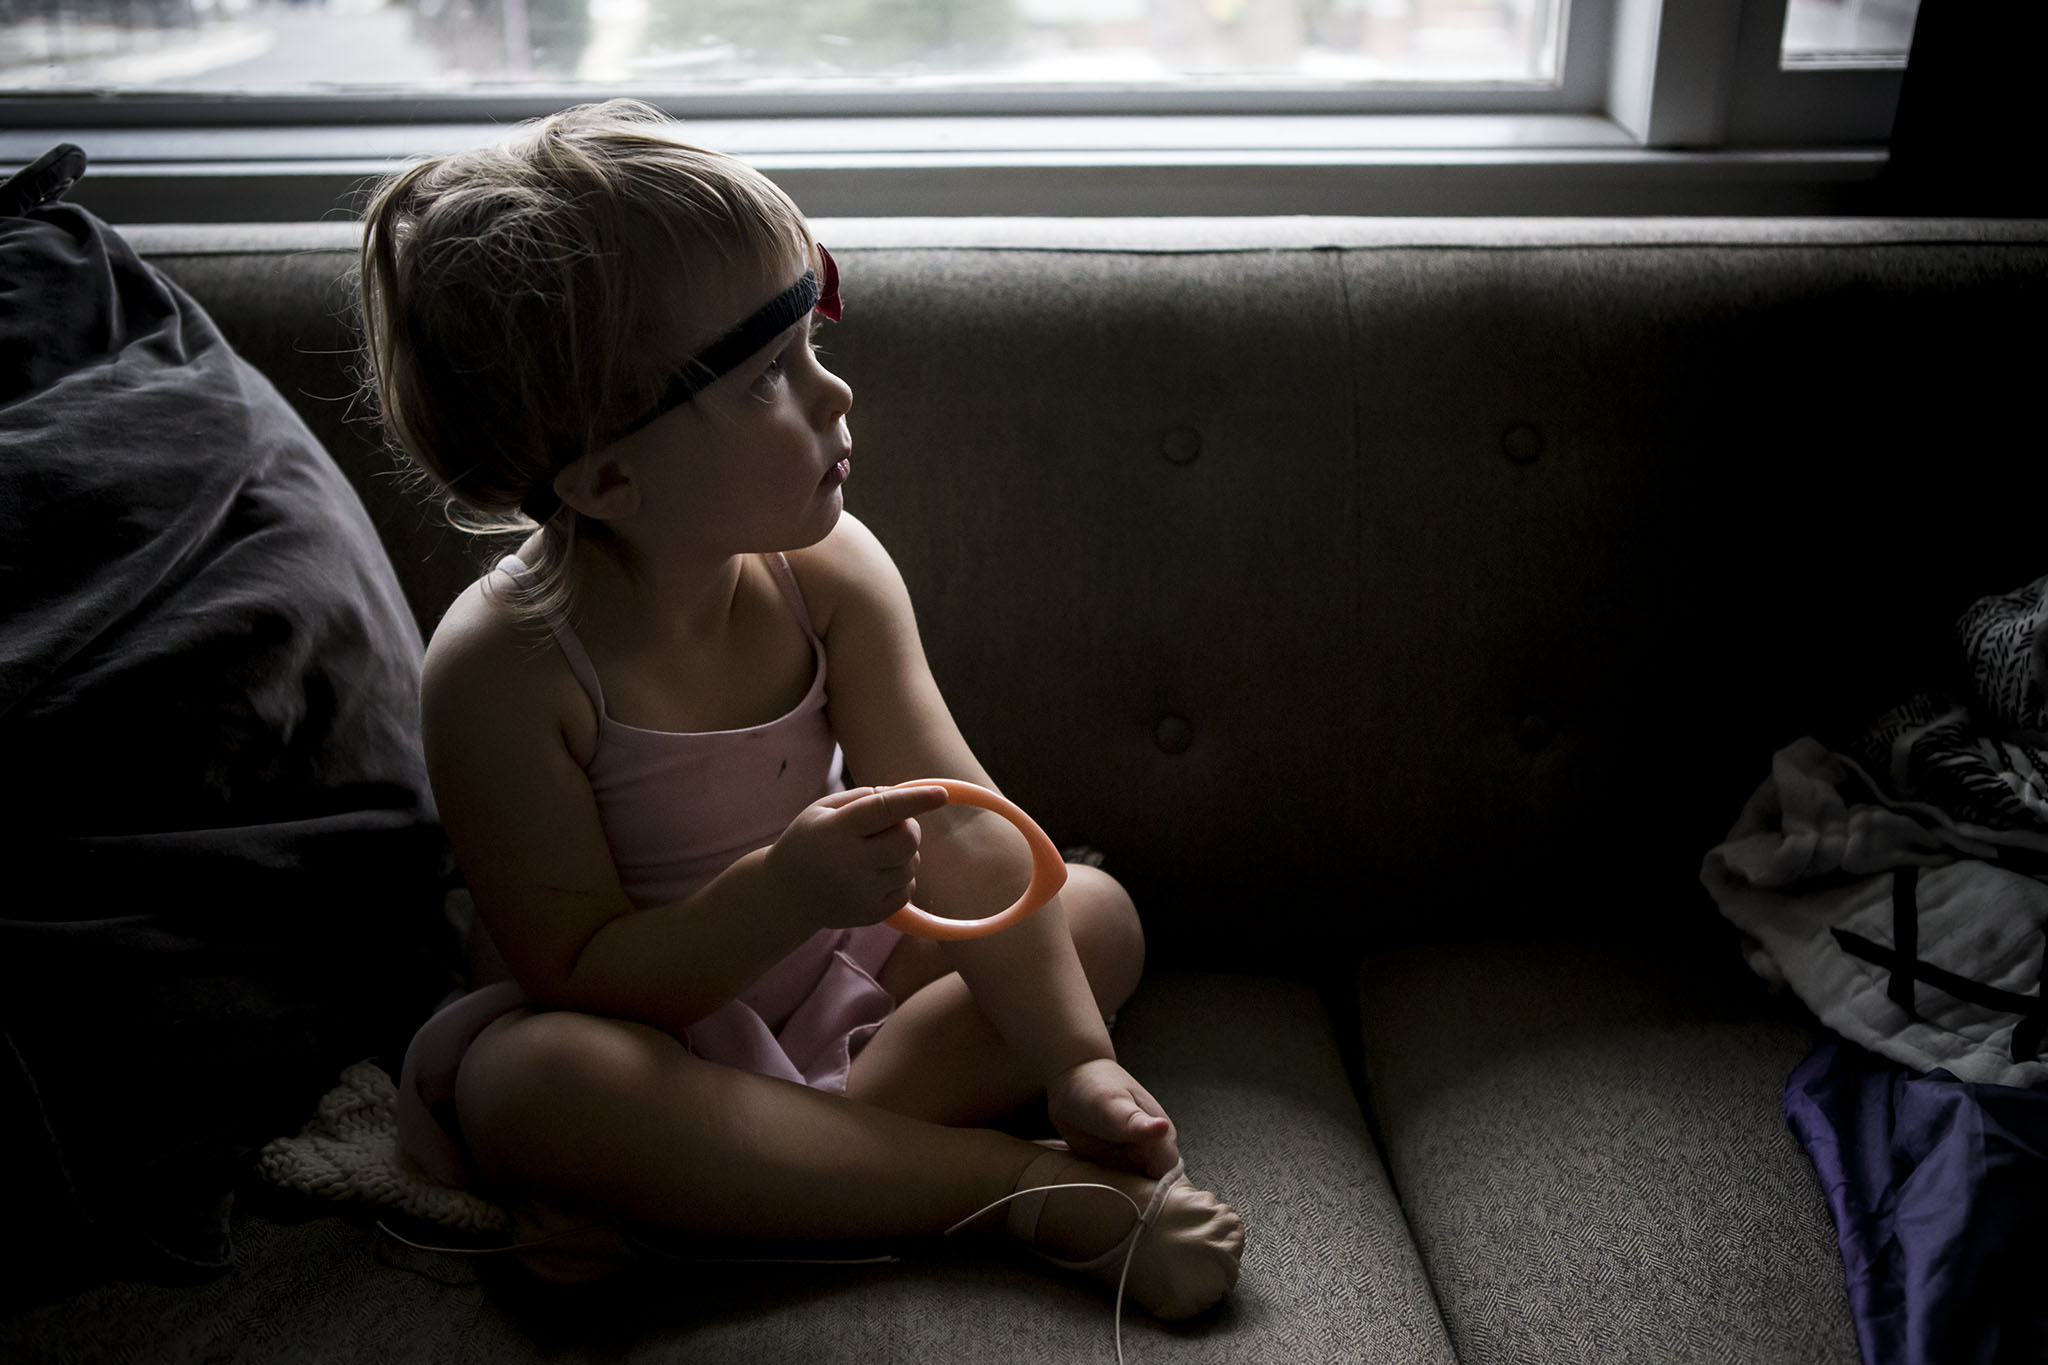 ct family photographers image of toddler in ballet clothes sitting on couch.